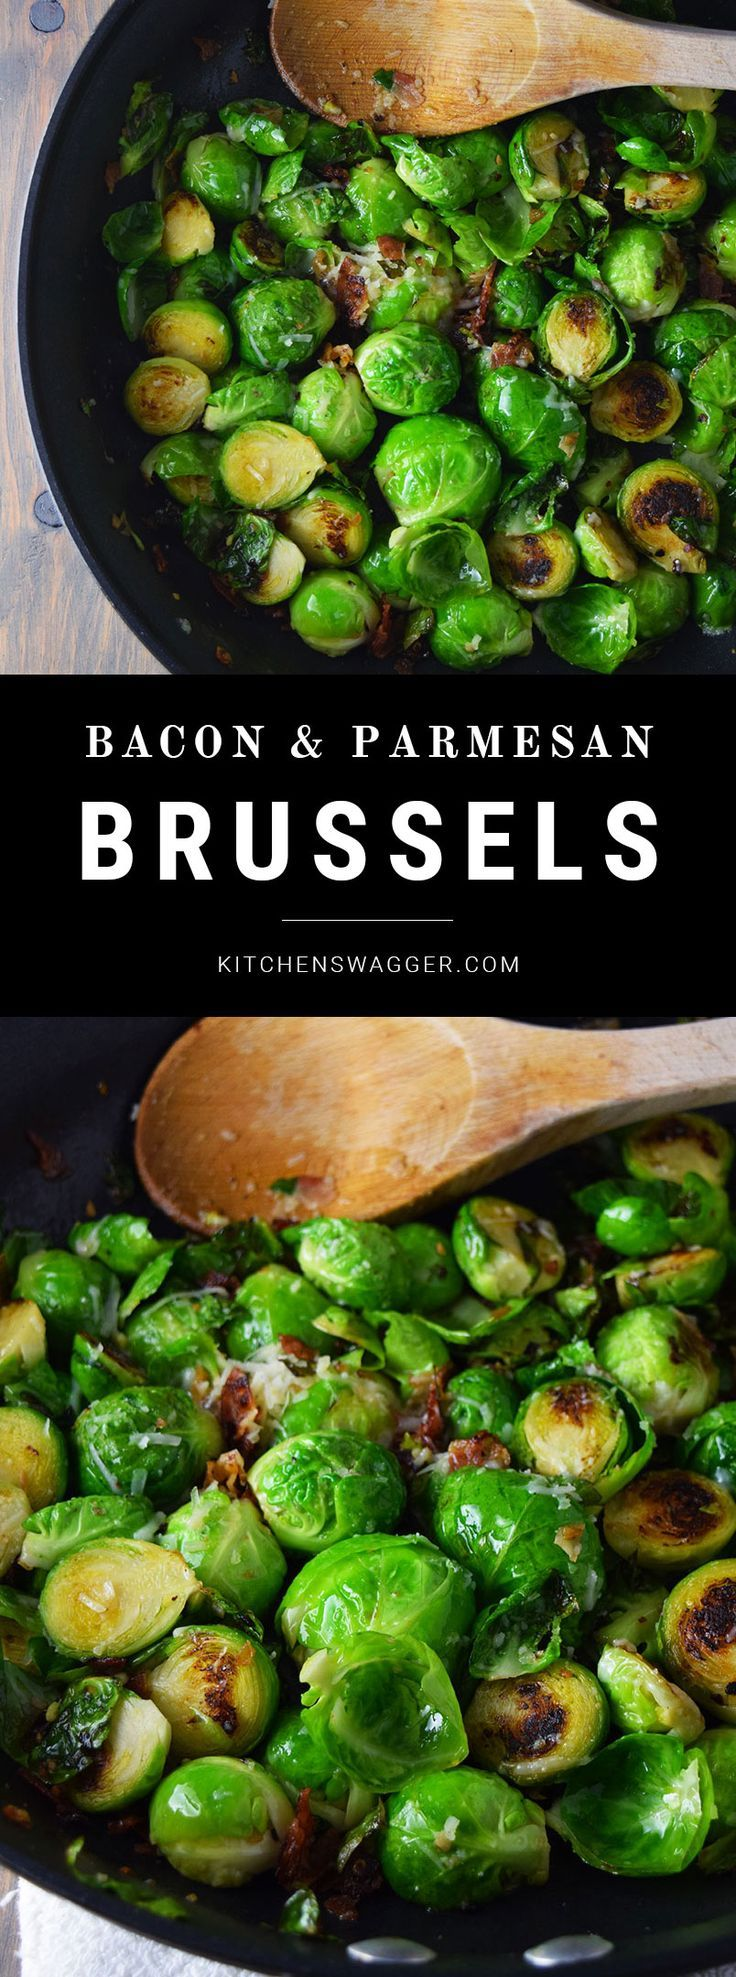 Brussel sprouts made with bacon, olive oil, garlic, and parmesan cheese.